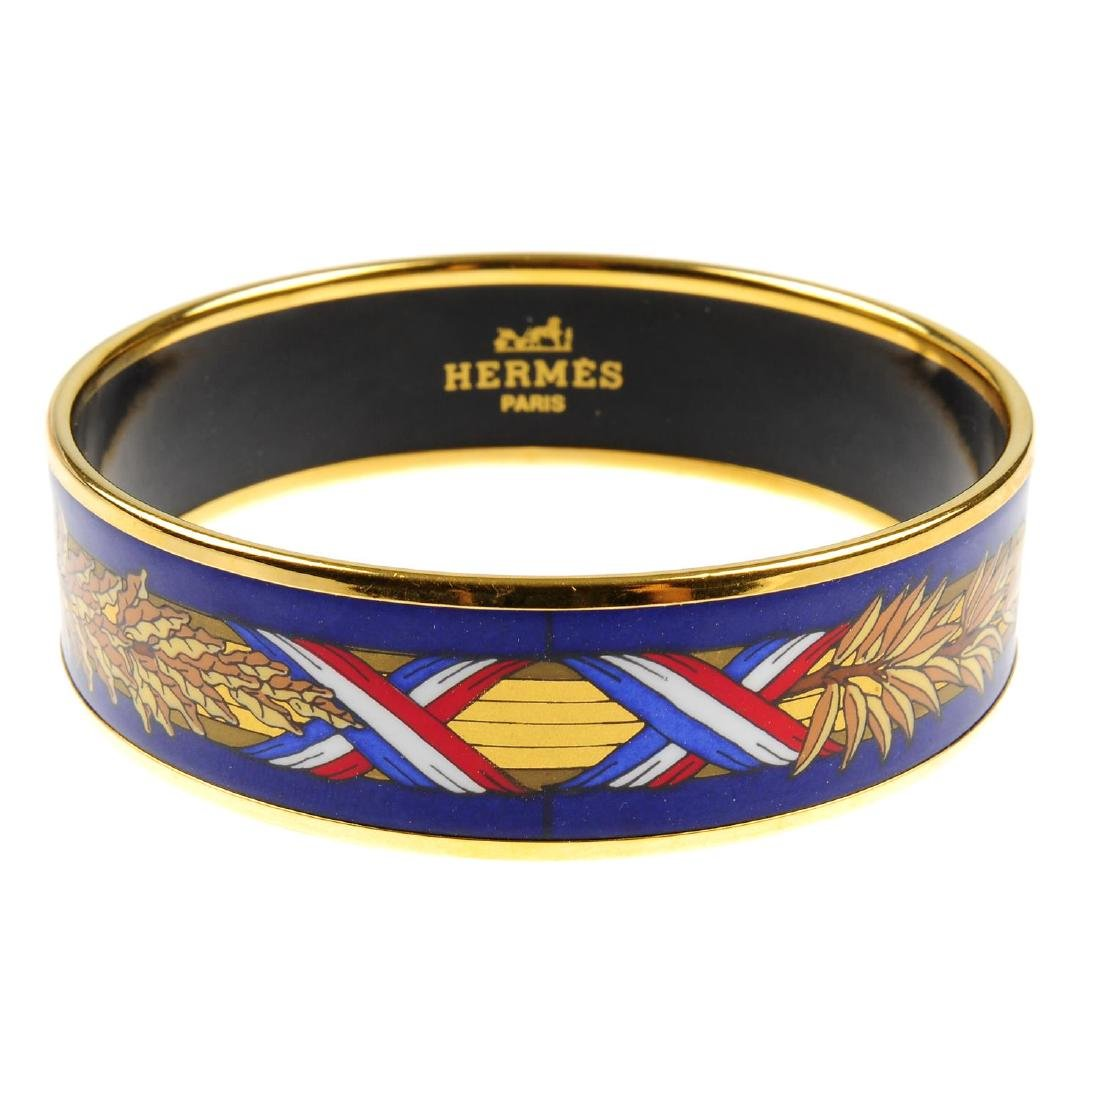 HERMÈS - an enamel bangle. The design features red,